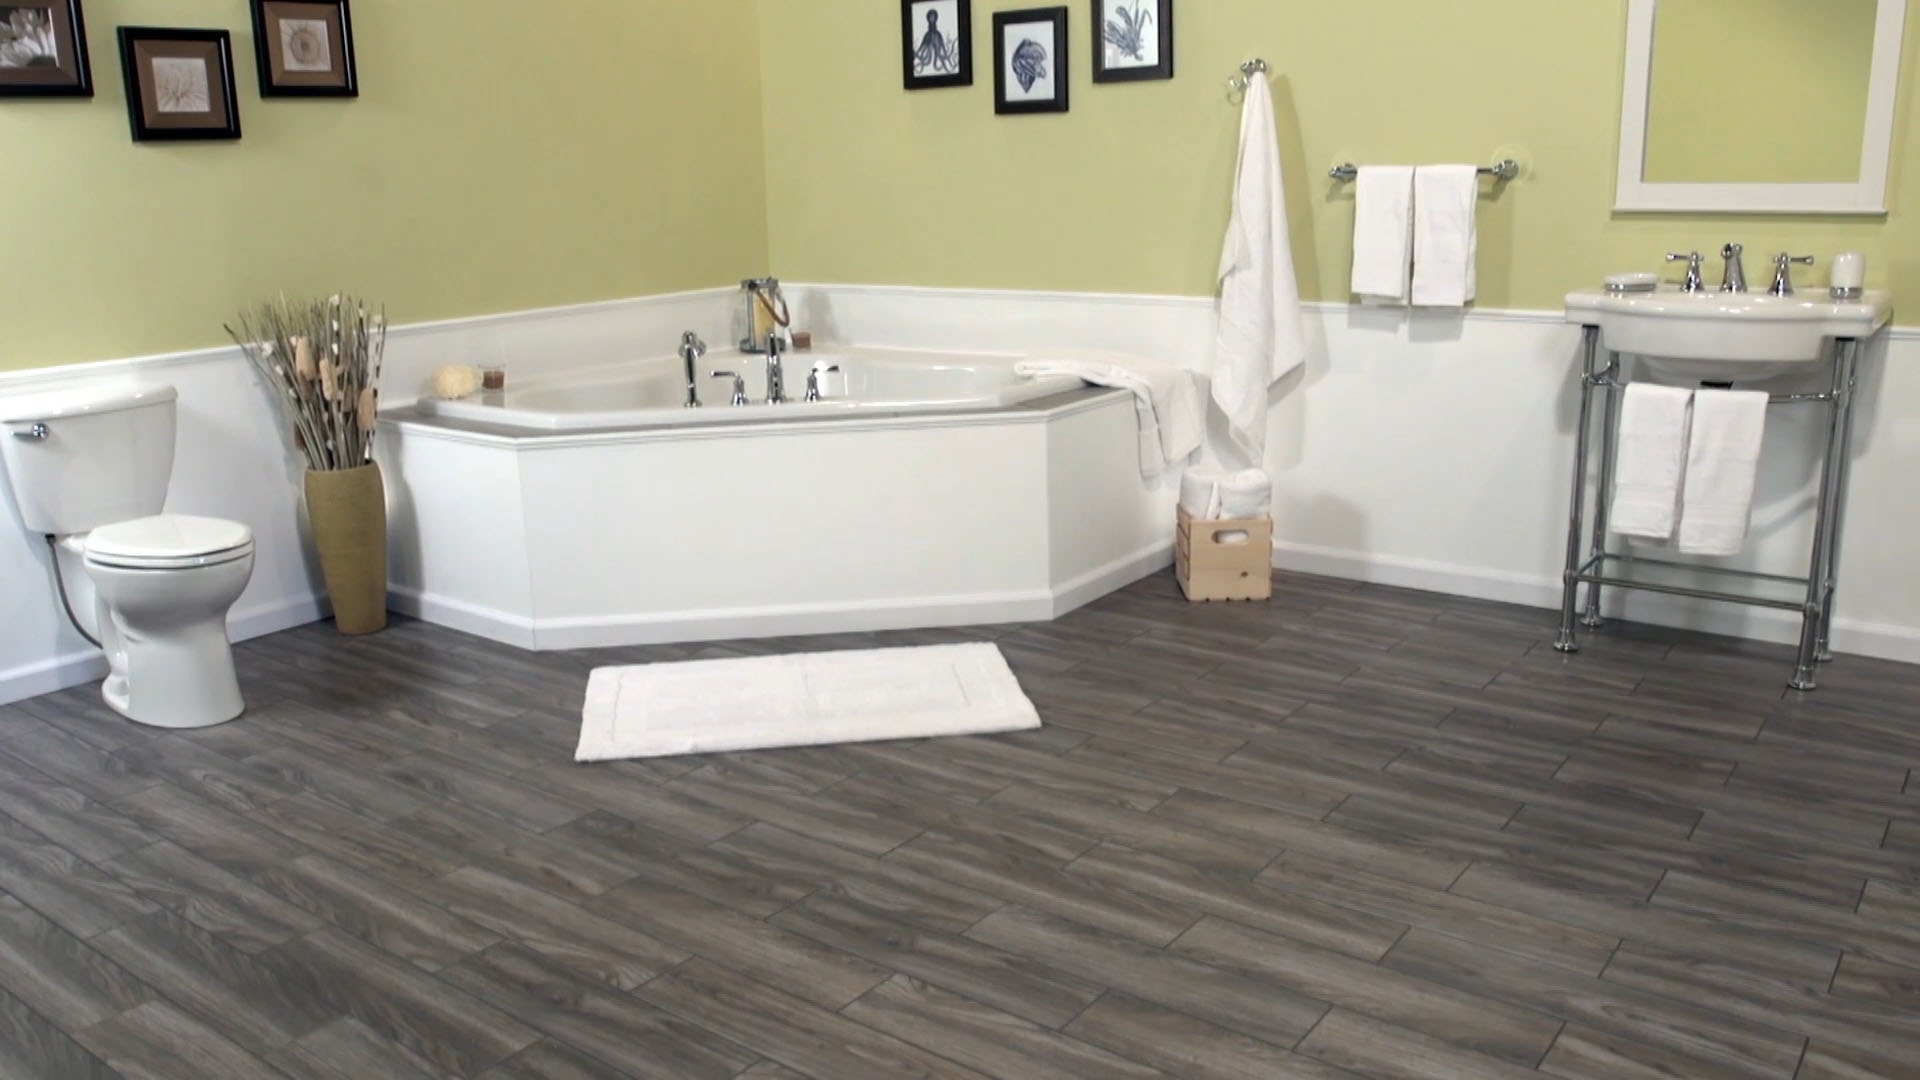 SnapStone® 12 x 12 Interlocking Porcelain Floor Tile at Menards®